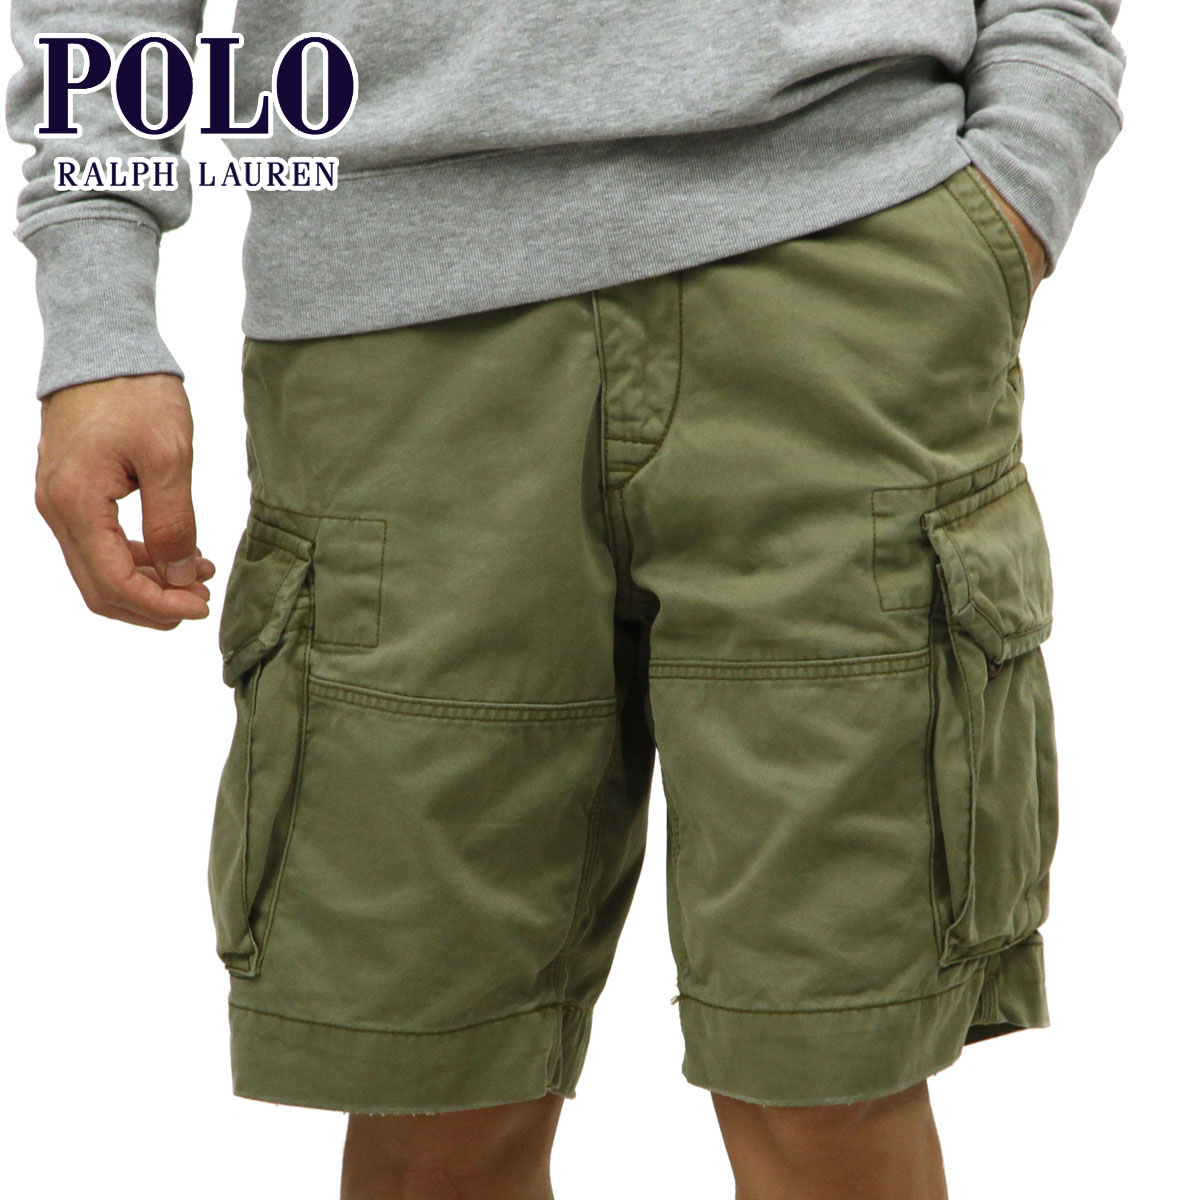 449f816b17 Polo Ralph Lauren POLO RALPH LAUREN regular article men short pants GELLAR  FATIGUE CHINO SHORT ...